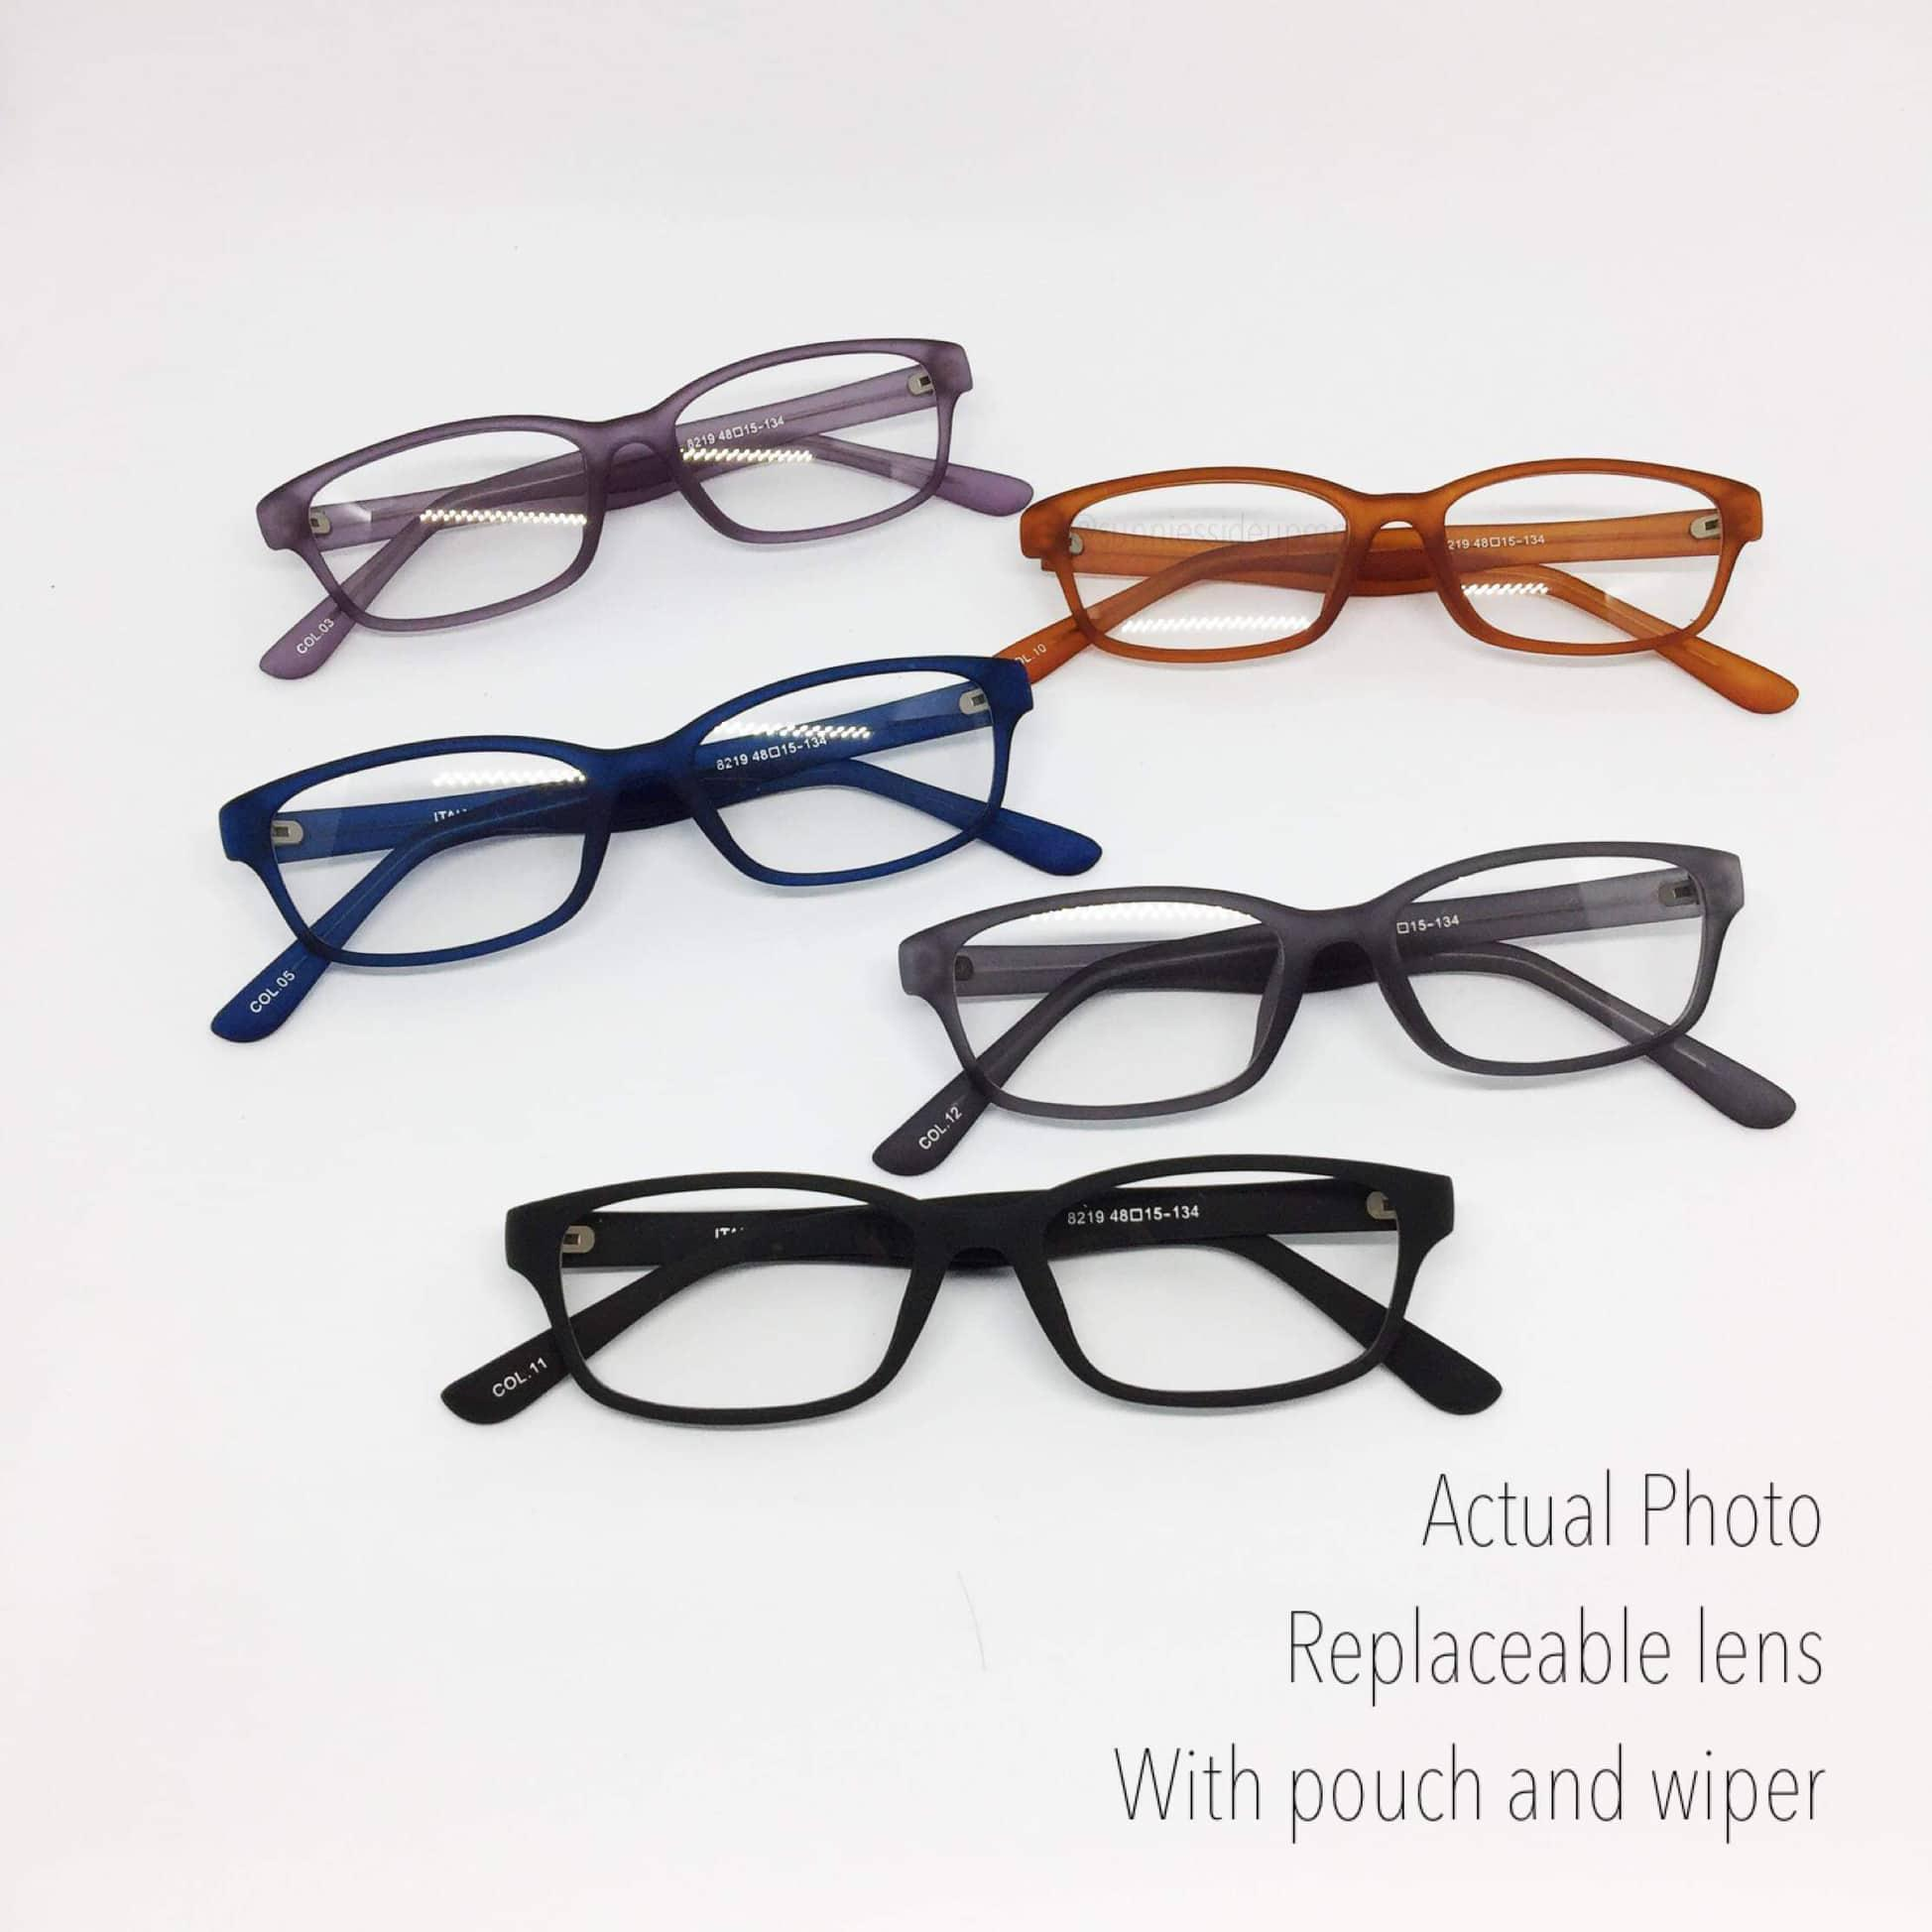 7627711b228 Kids Rubberized Eyeglasses – Replaceable Lens – Optical Frame 8219